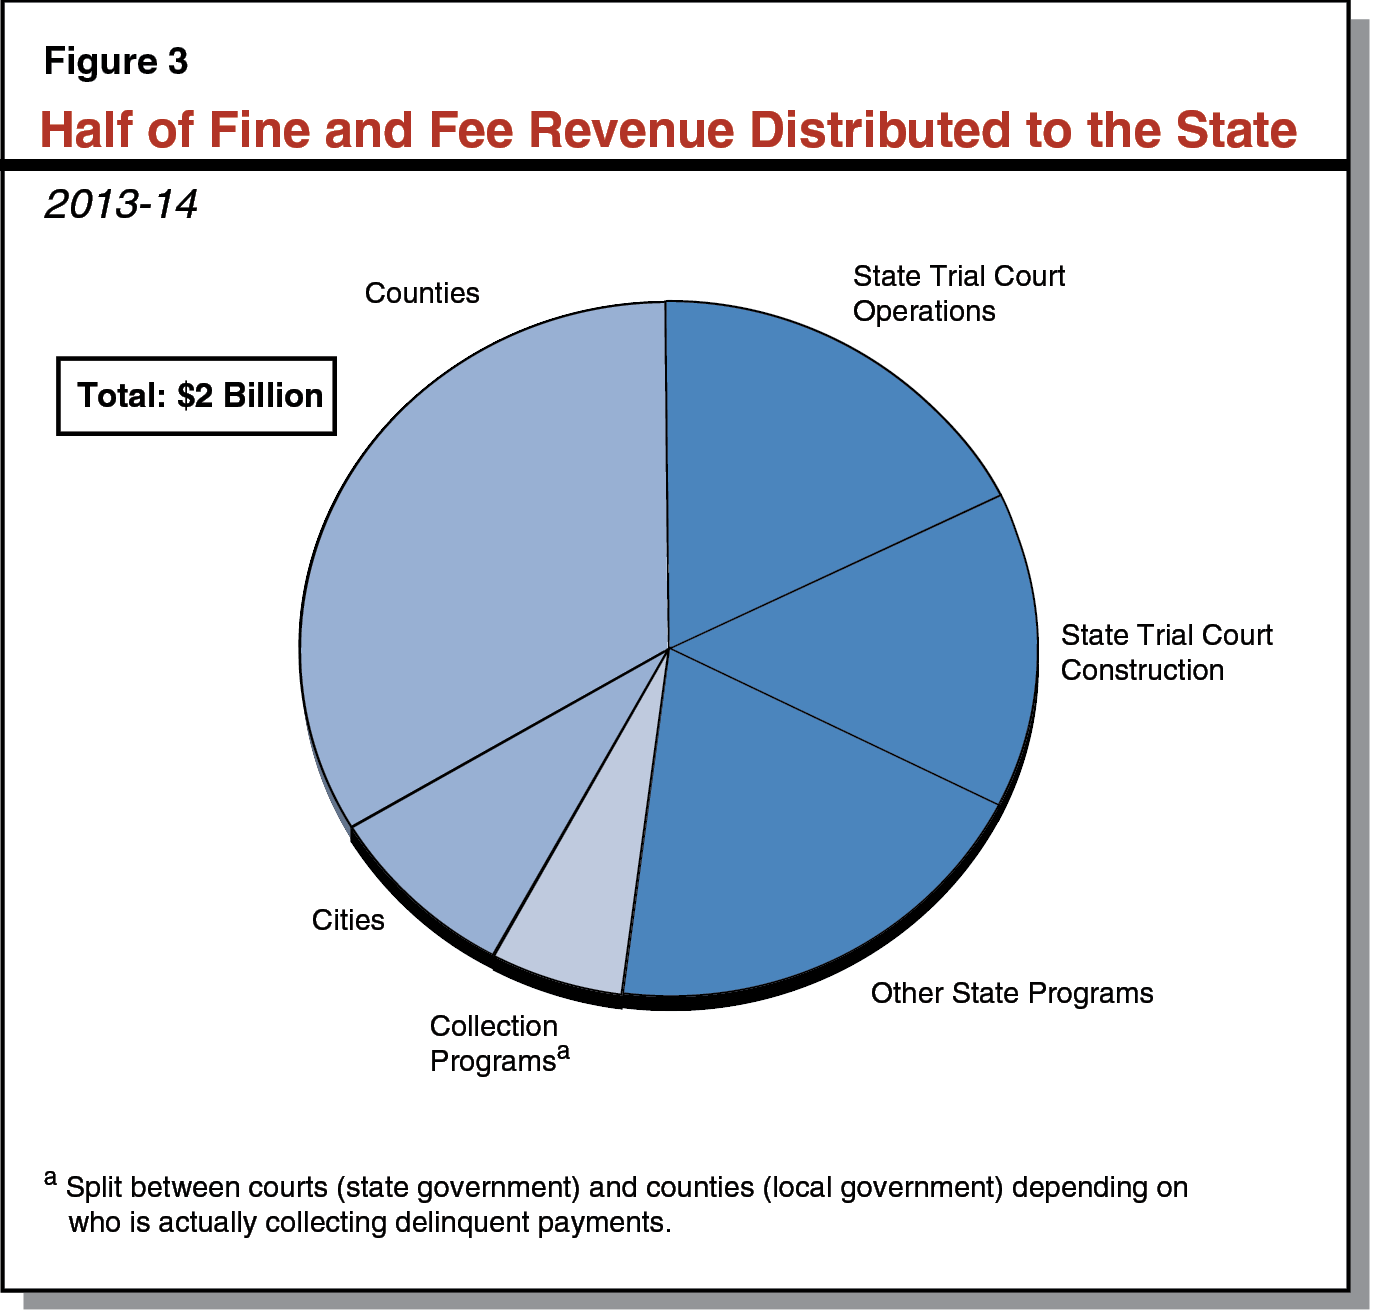 Figure 3 - Half of Fine and Fee Revenue Distributed to the State